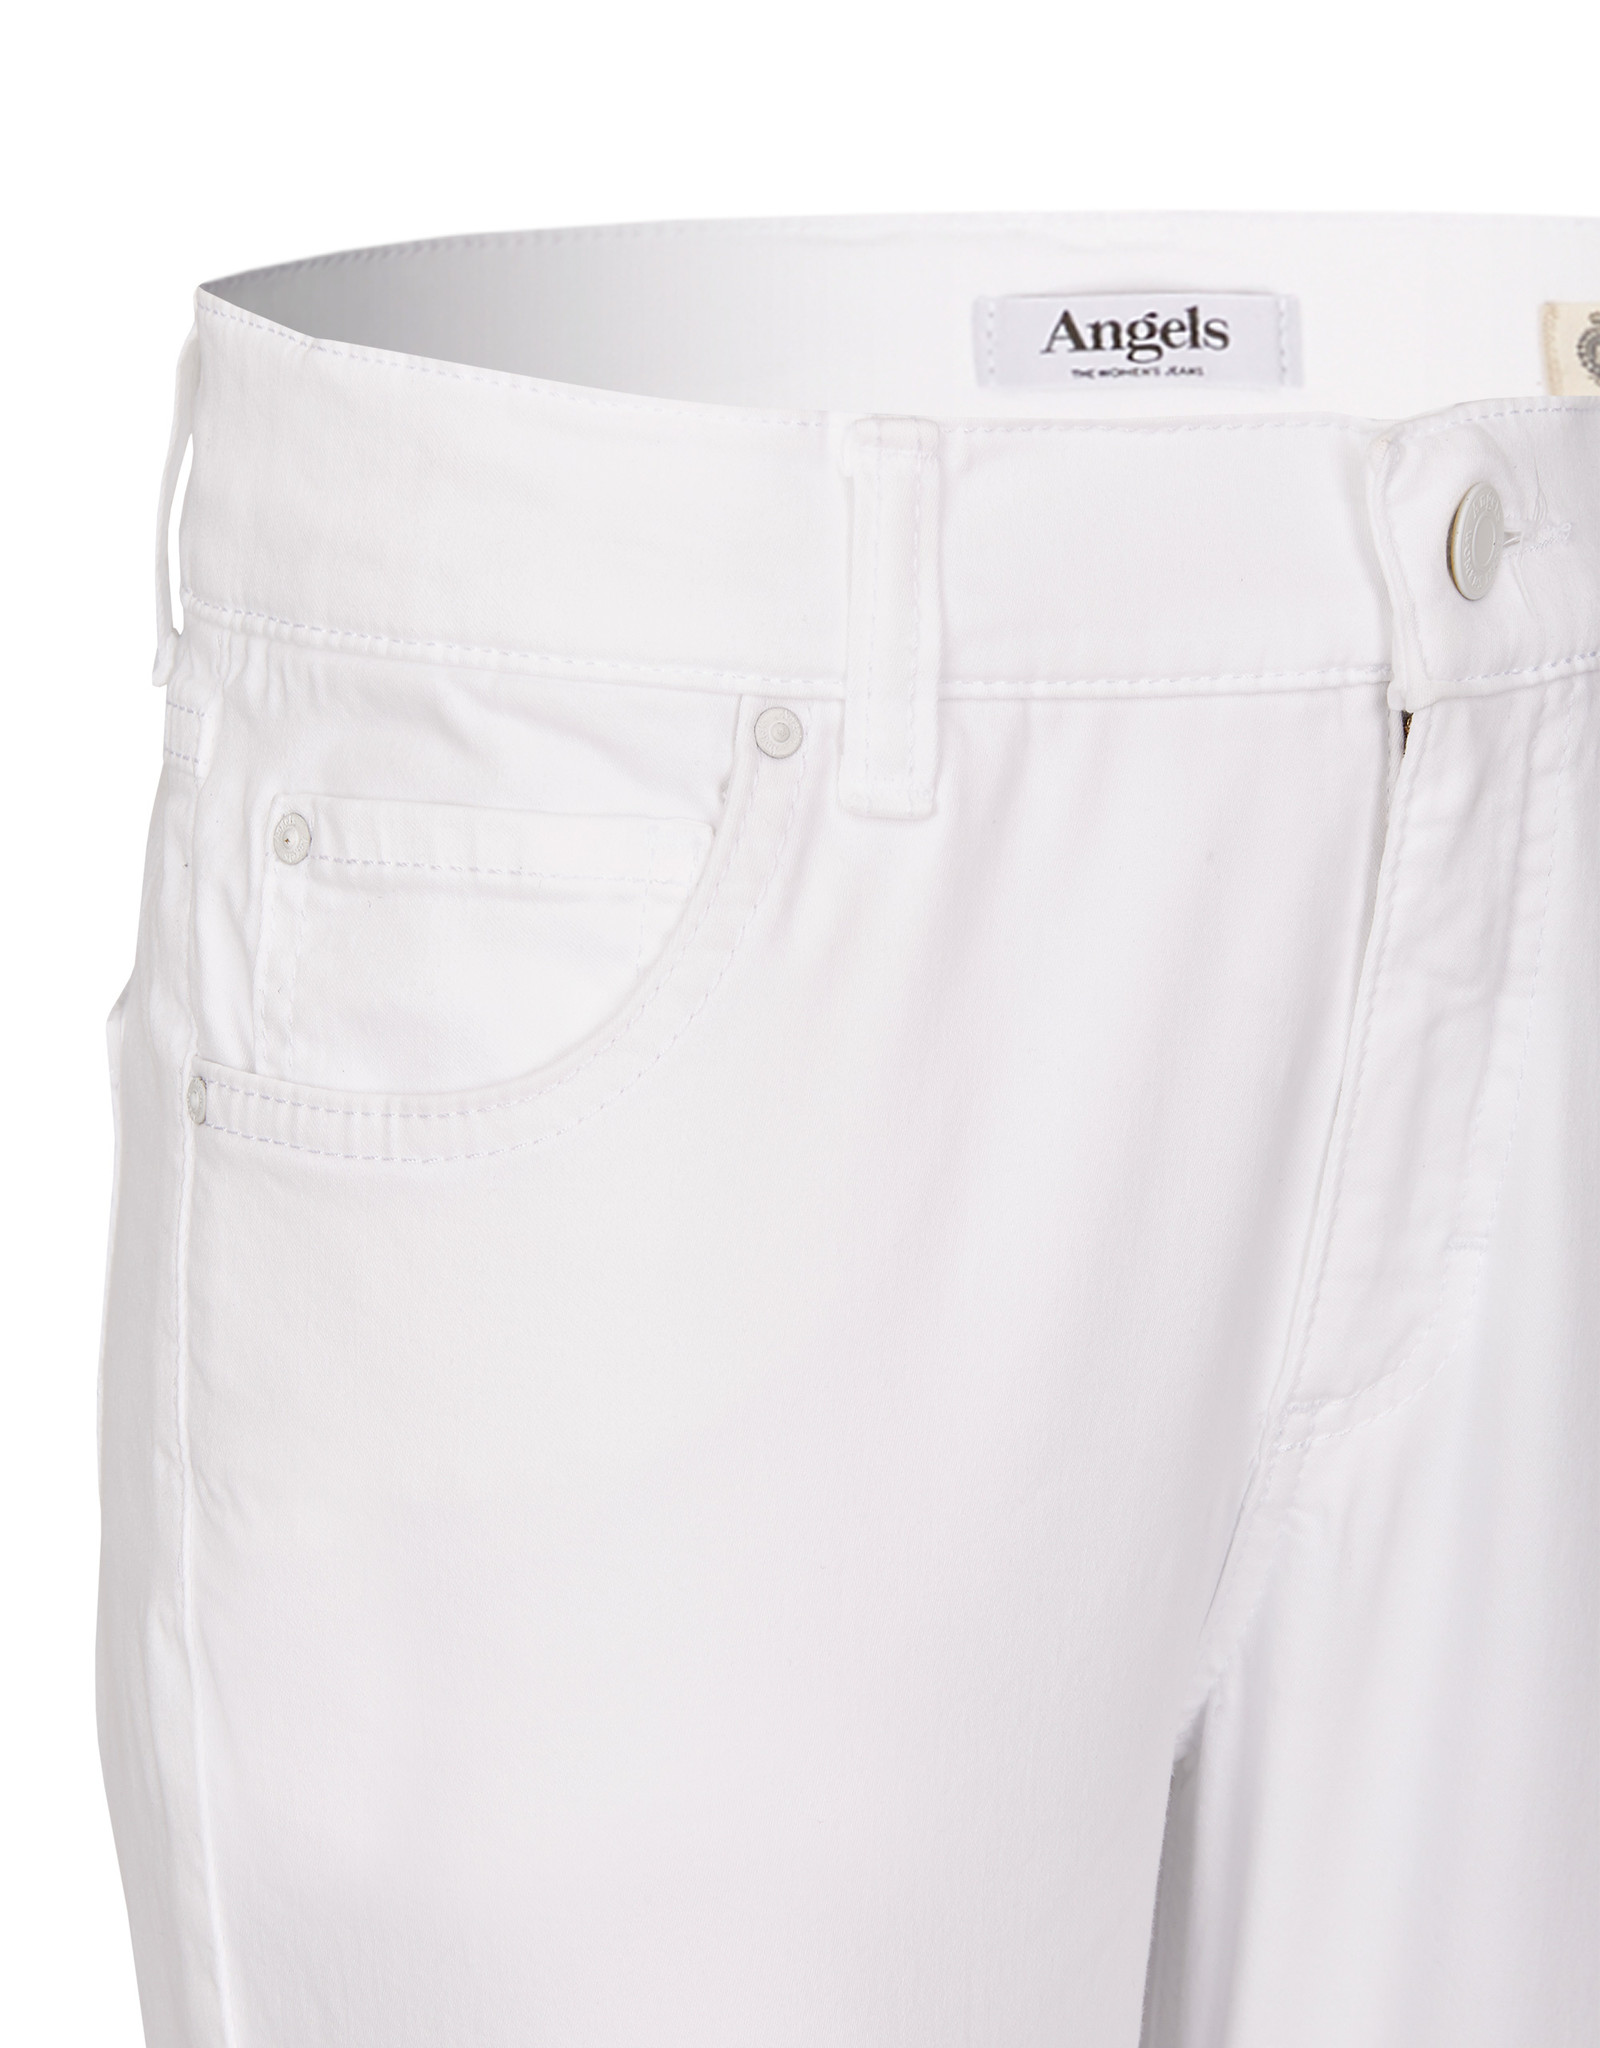 Angels jeans 800030-784/701 dolly